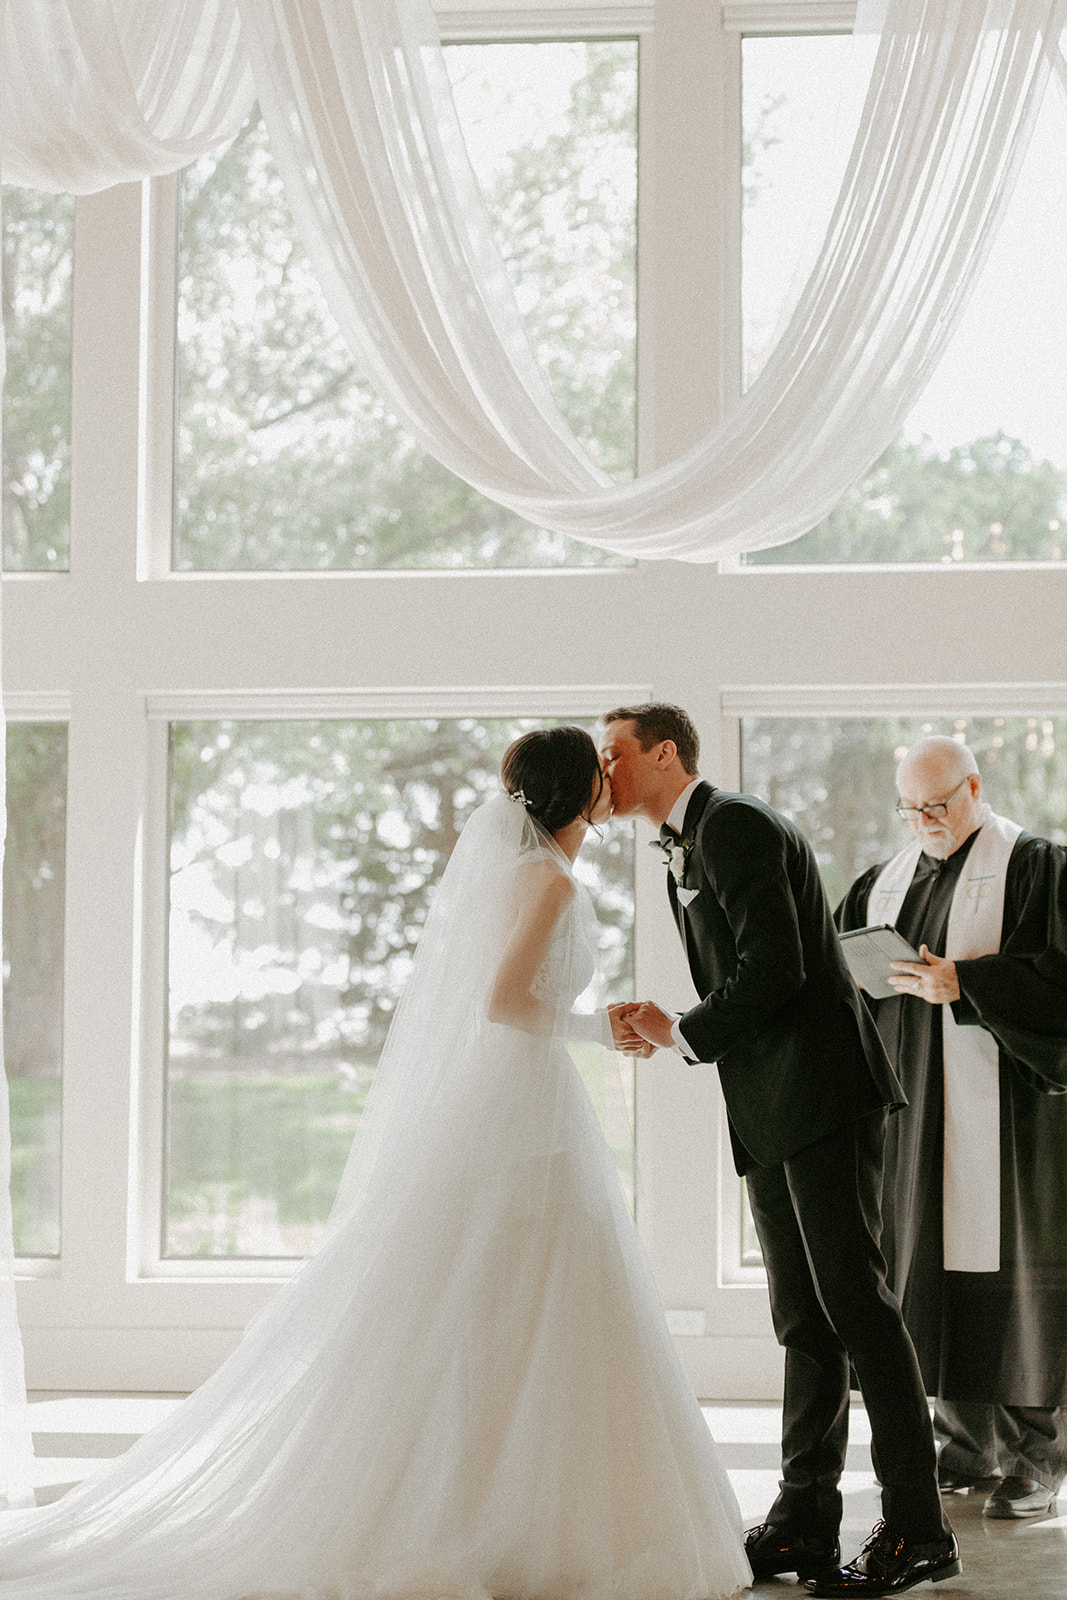 pear_tree_estate_wedding_photographer_champaign_chicago_illinois_midwest_wright_photographs_0222.jpg